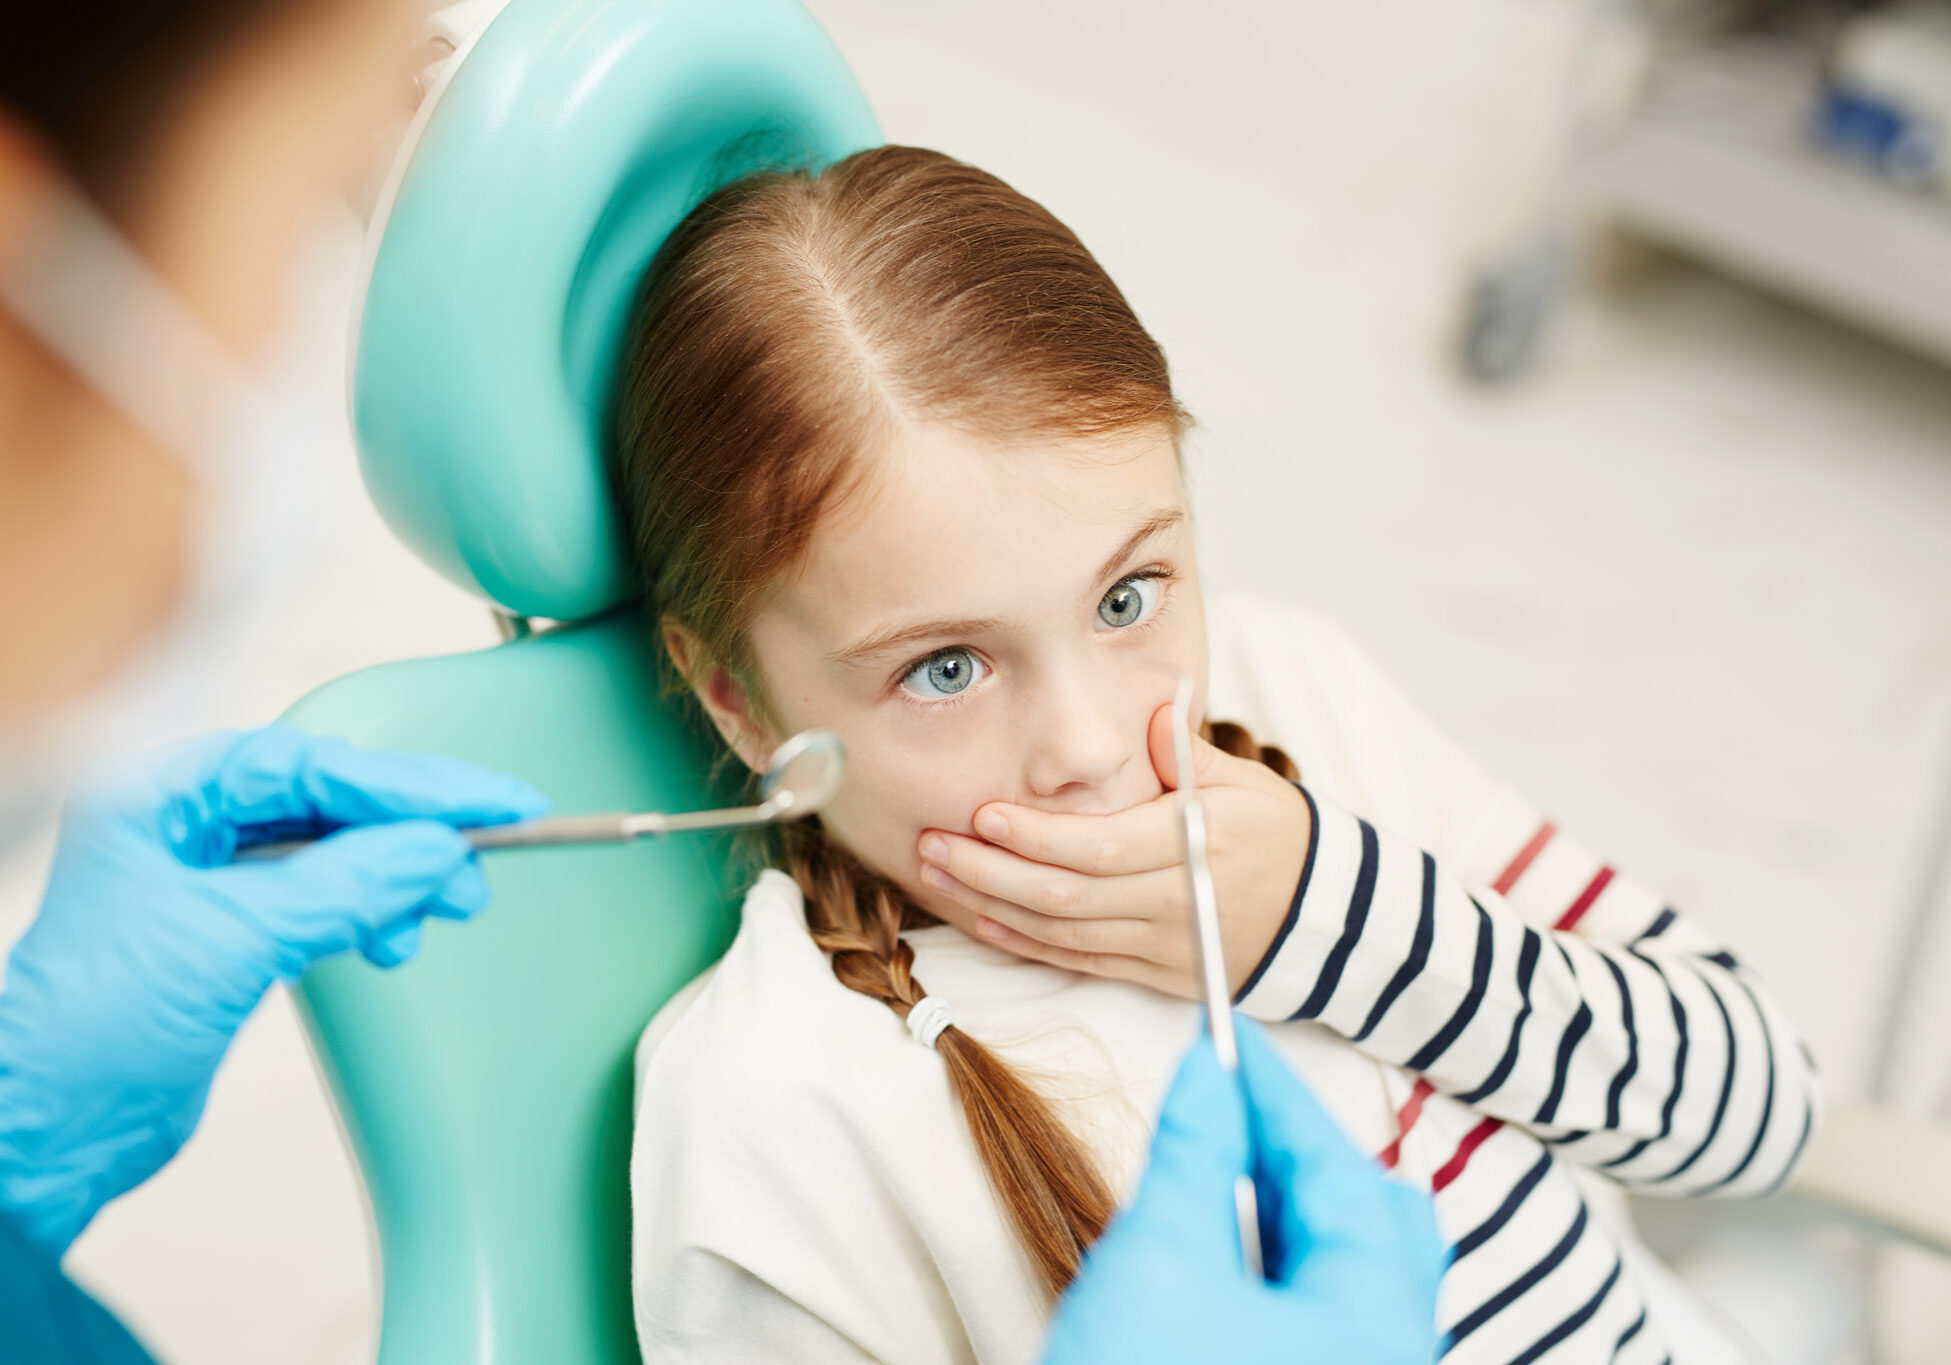 Scared little girl covering her mouth by hand while looking at dental tools for oral check-up held by dentist